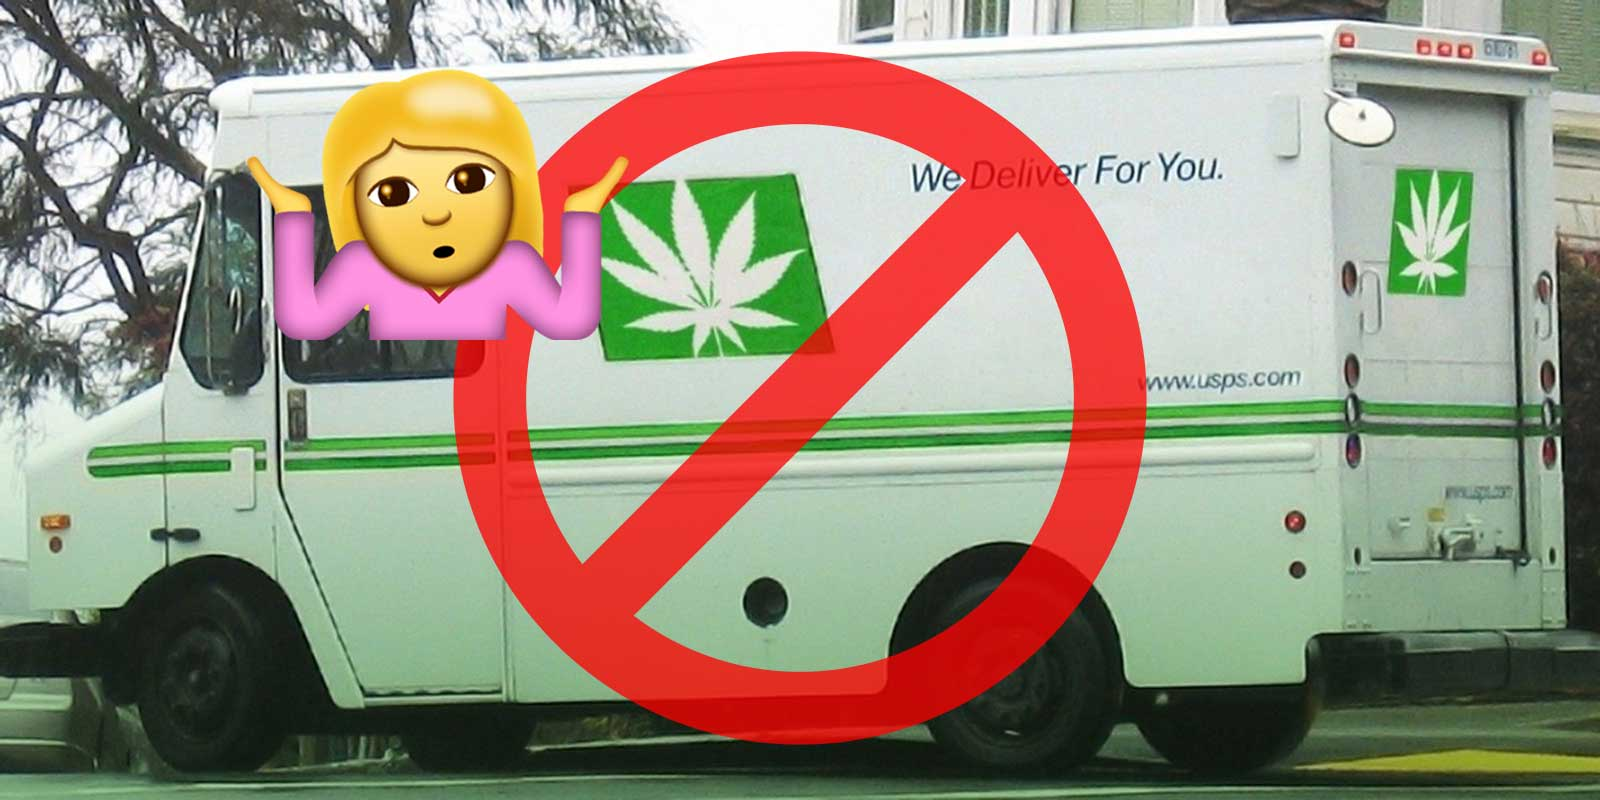 Mailing Cannabis Not Allowed USPS